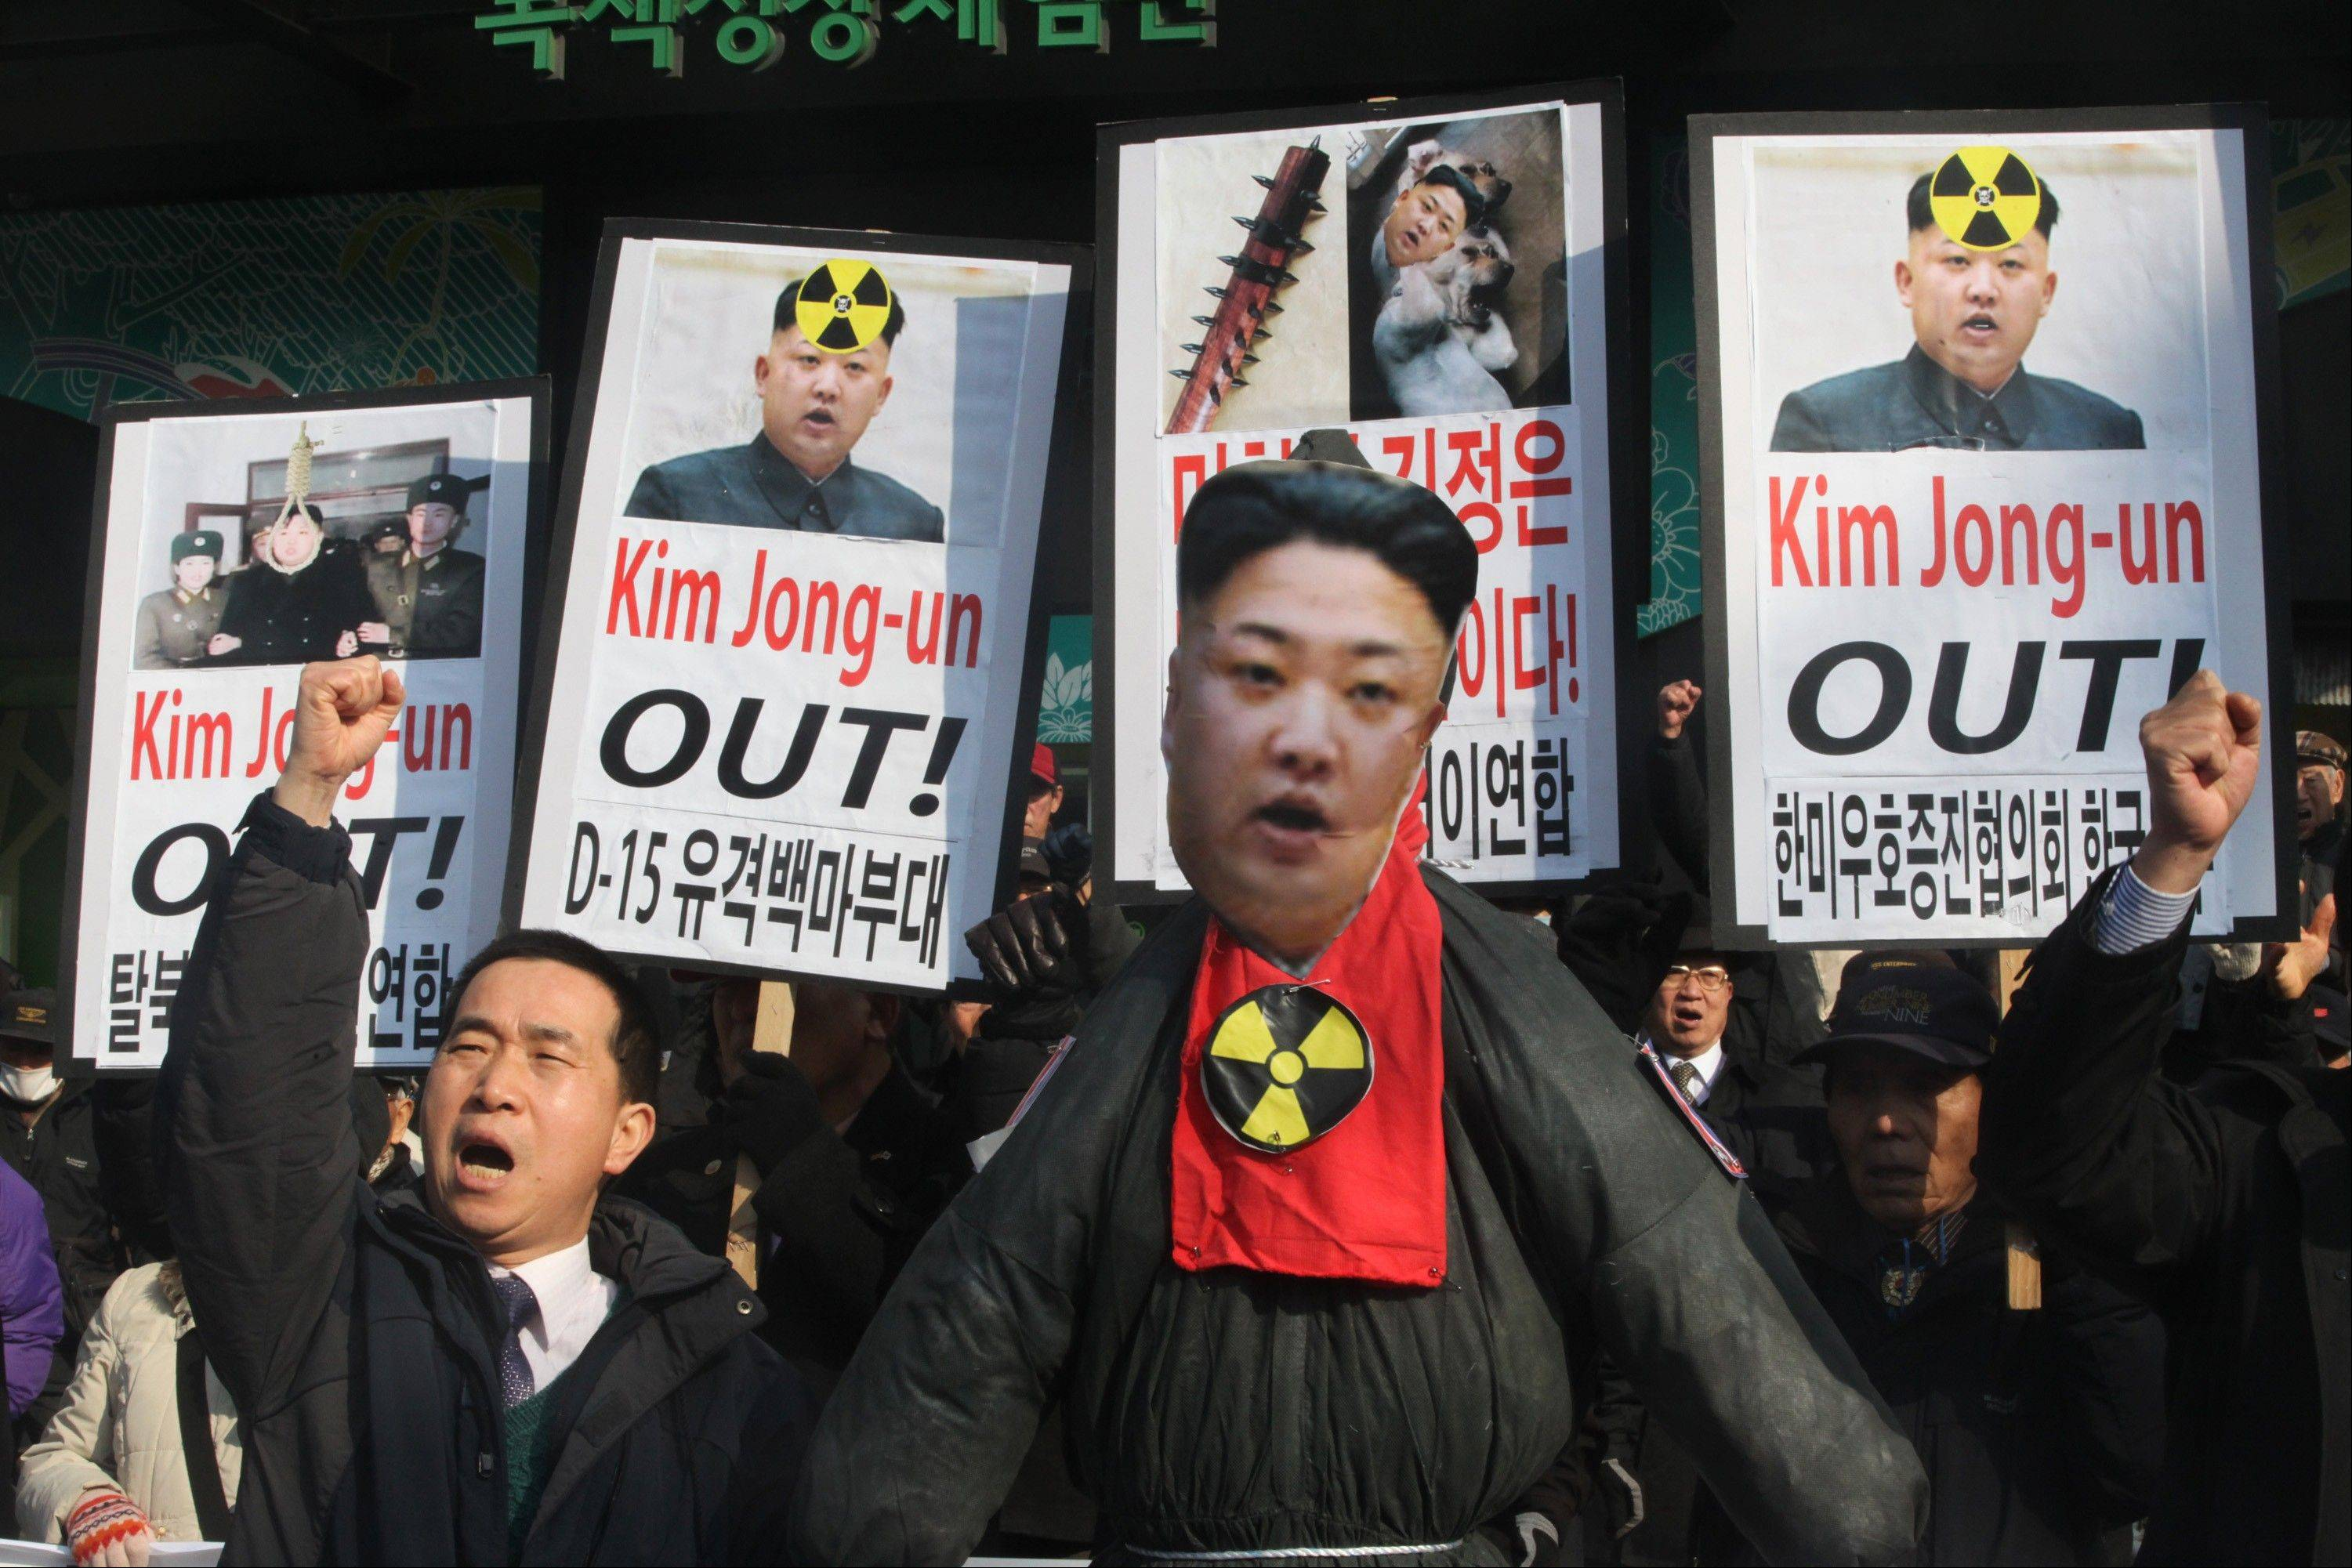 A South Korean protester shouts slogans near an effigy of North Korean leader Kim Jong Un during an anti-North Korea rally in February. The United States and China reached agreement on a draft resolution to punish North Korea.